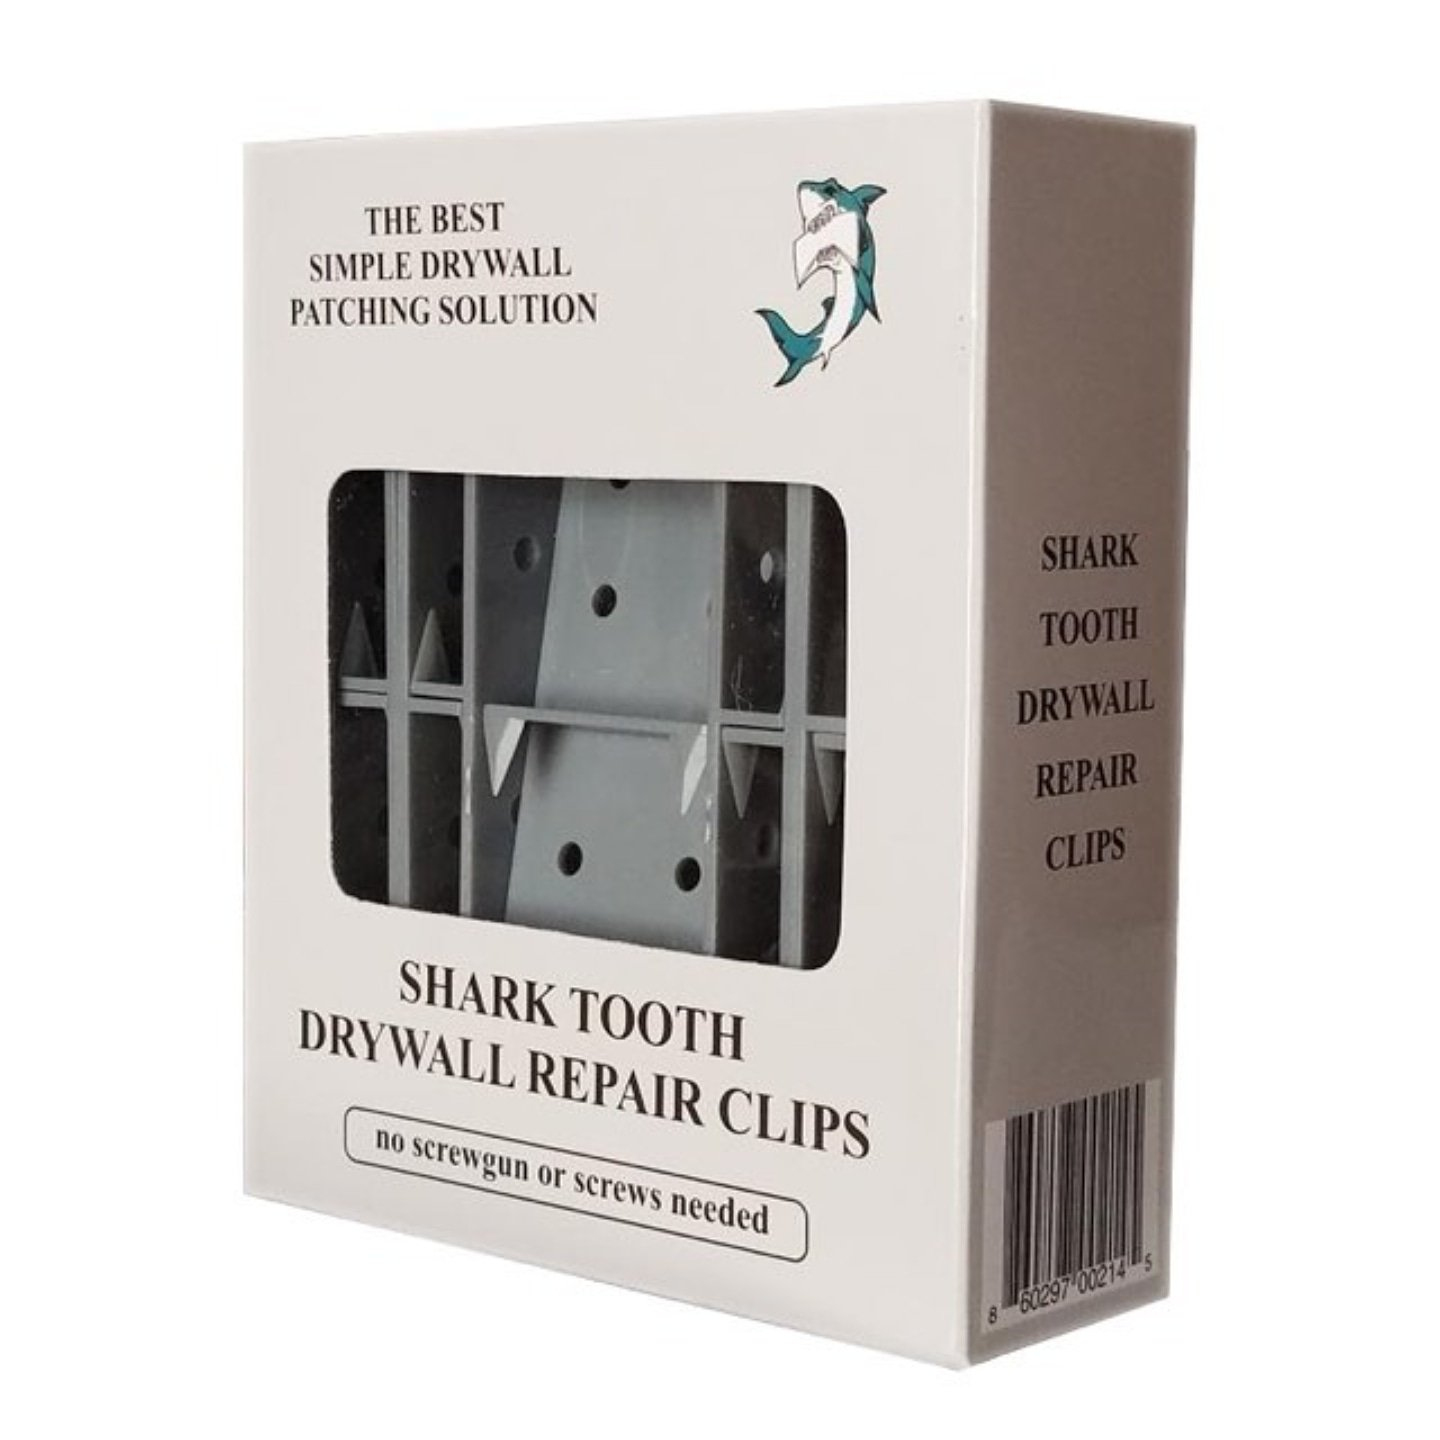 Sharktooth Drywall Repair Clips